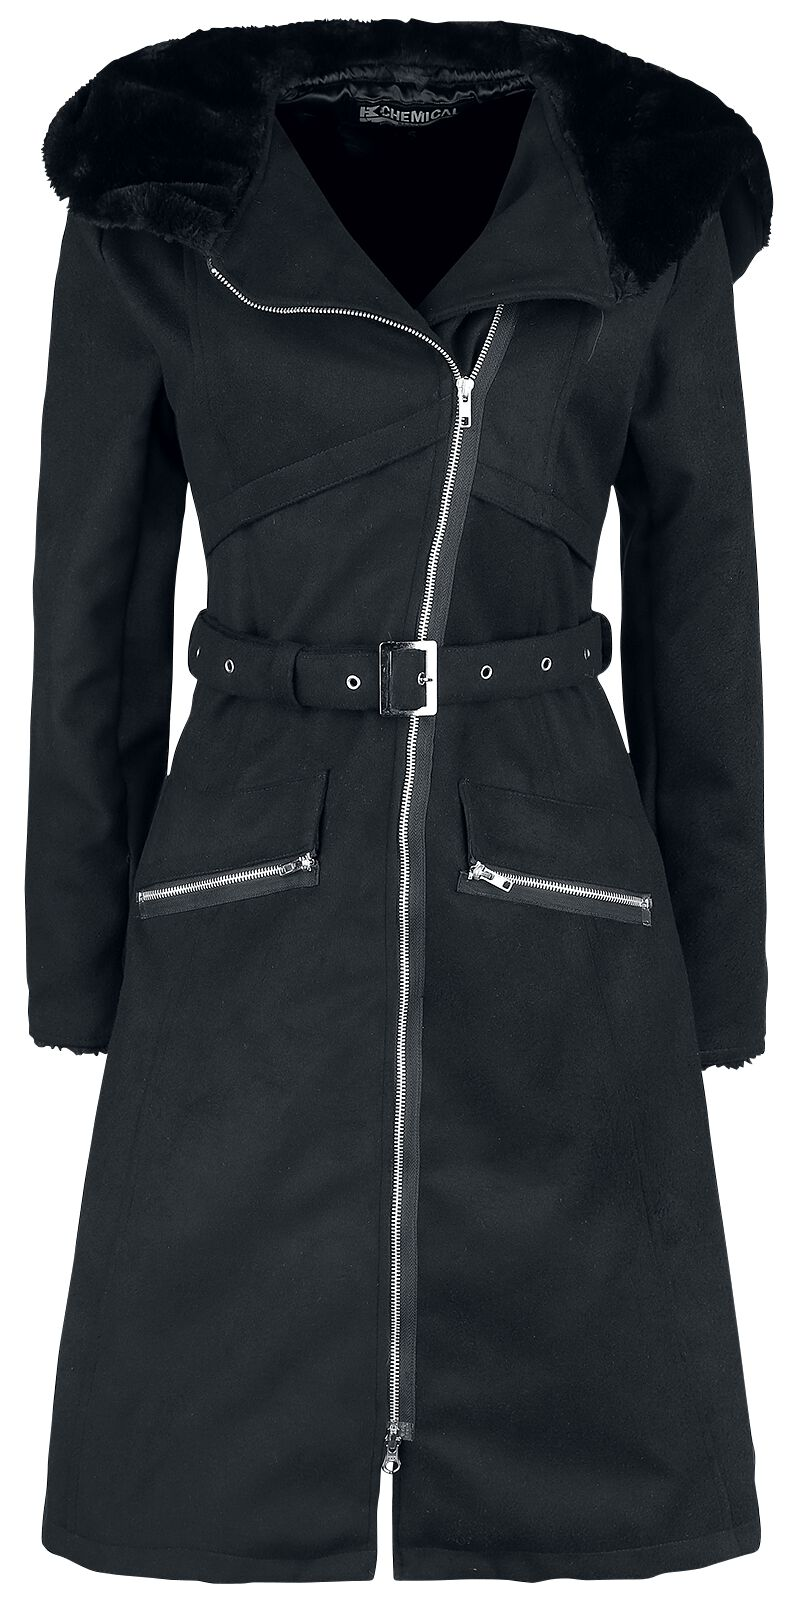 Jacken - Chemical Black Kiara Coat Mantel schwarz  - Onlineshop EMP